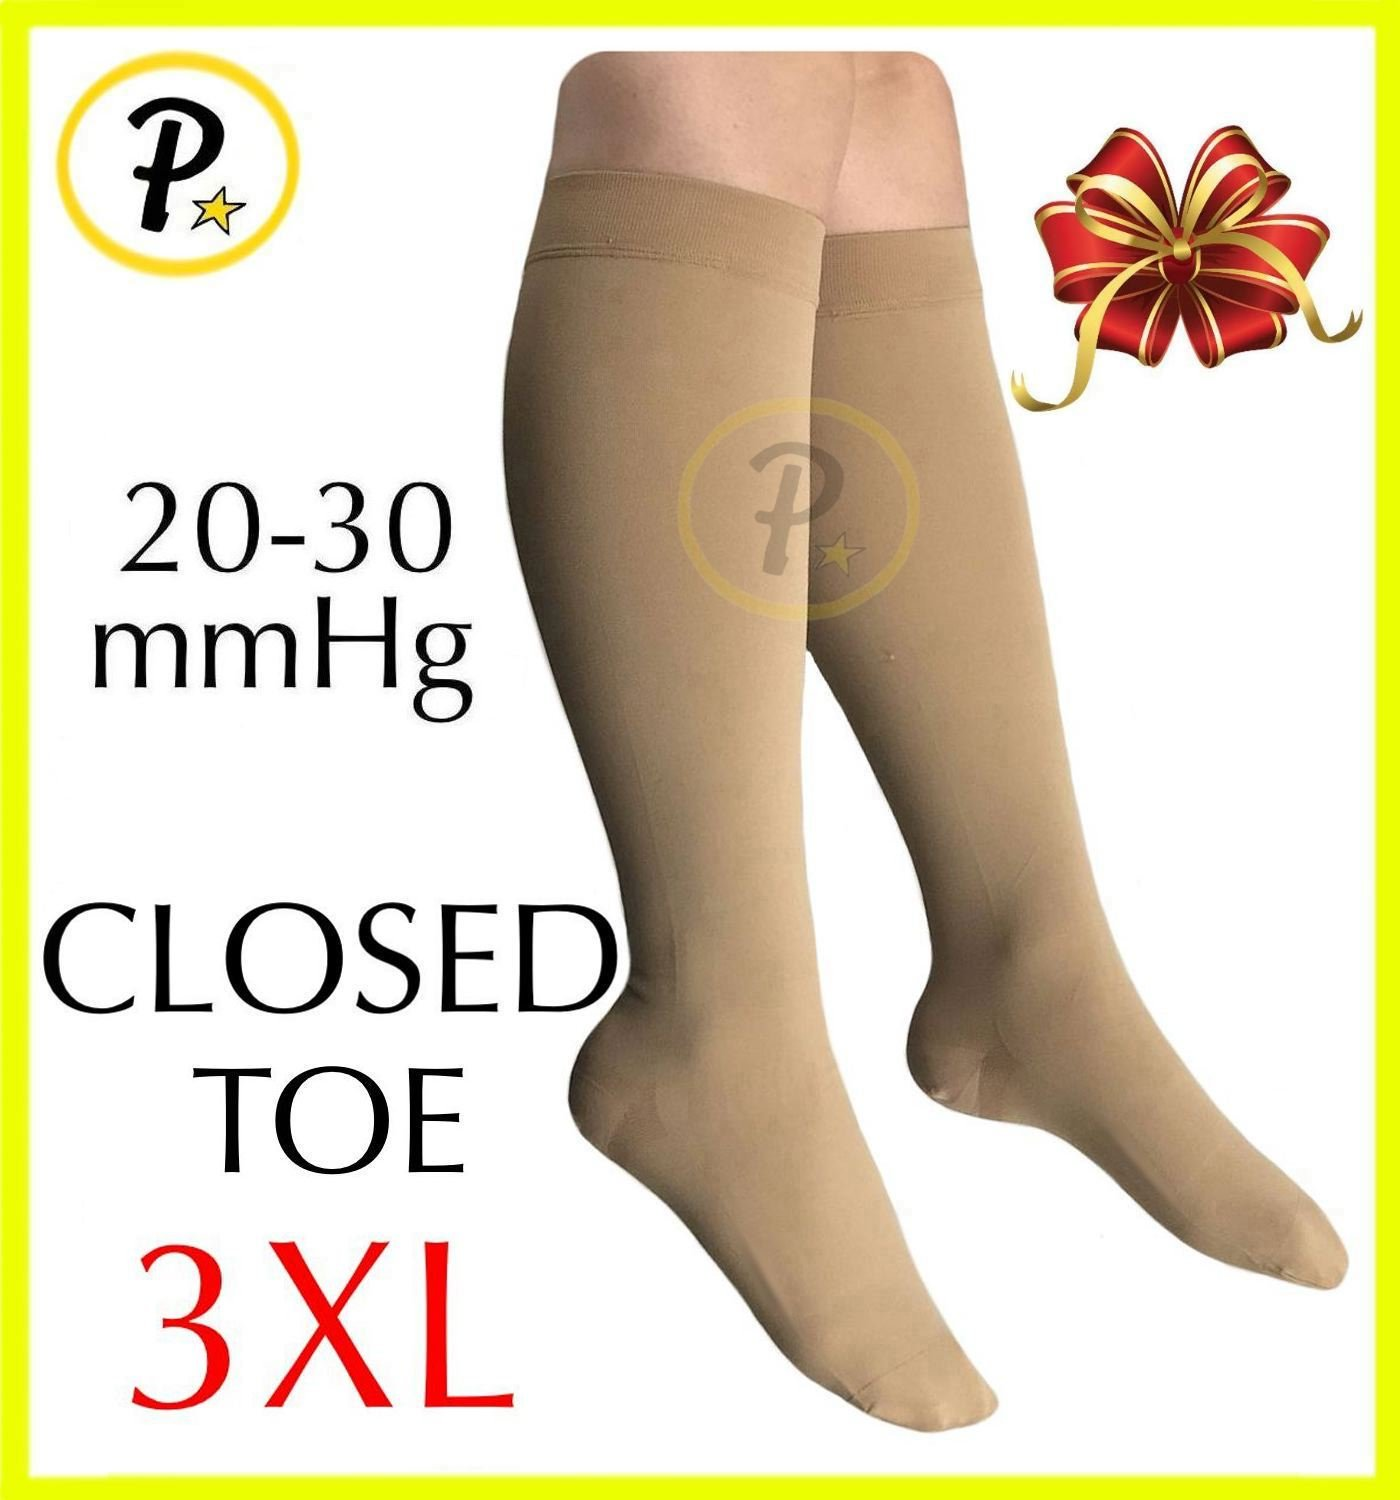 Presadee Closed Toe (BIG & TALL SUPER SIZE) Traditional 20-30 mmHg Compression Grade Swelling Veins Ankle Calf Leg Sock Support (3XL, Beige)